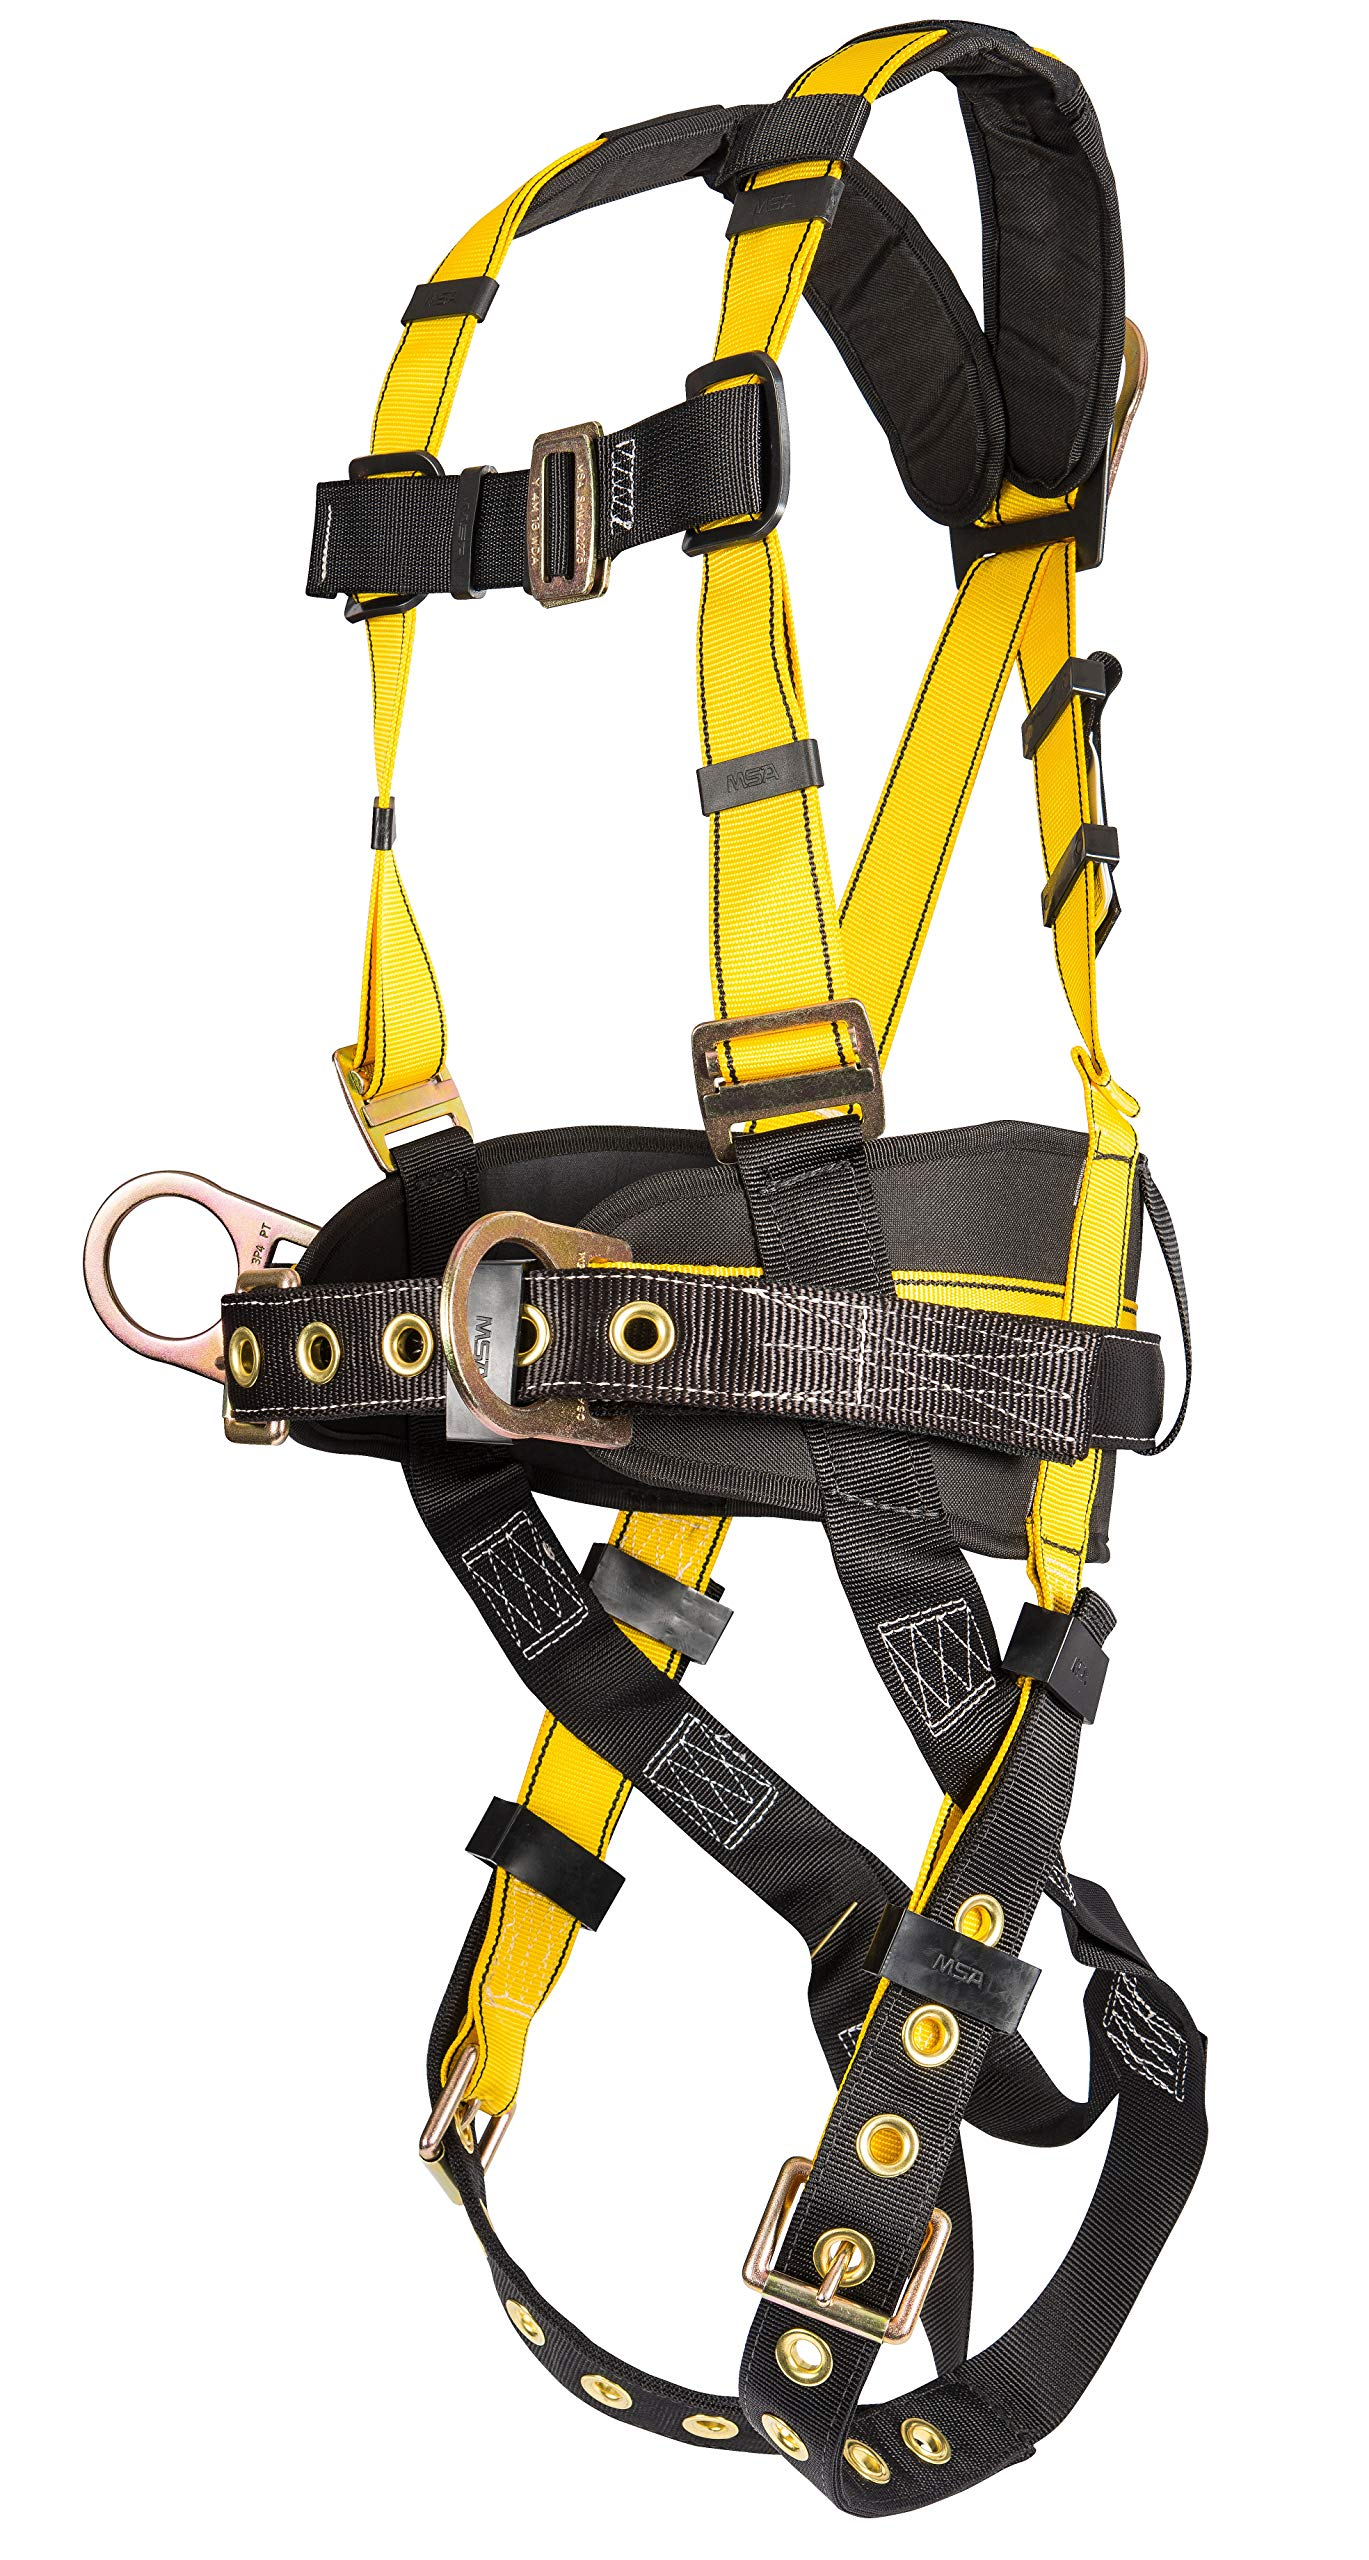 MSA 10077571 Workman Construction Harness with Back/Hip D-Rings, Tongue Buckle Leg Straps, Qwik-Fit Chest Strap Buckle, Integral Back Pad, Tool Belt and Shoulder Pads, Standard by MSA (Image #5)